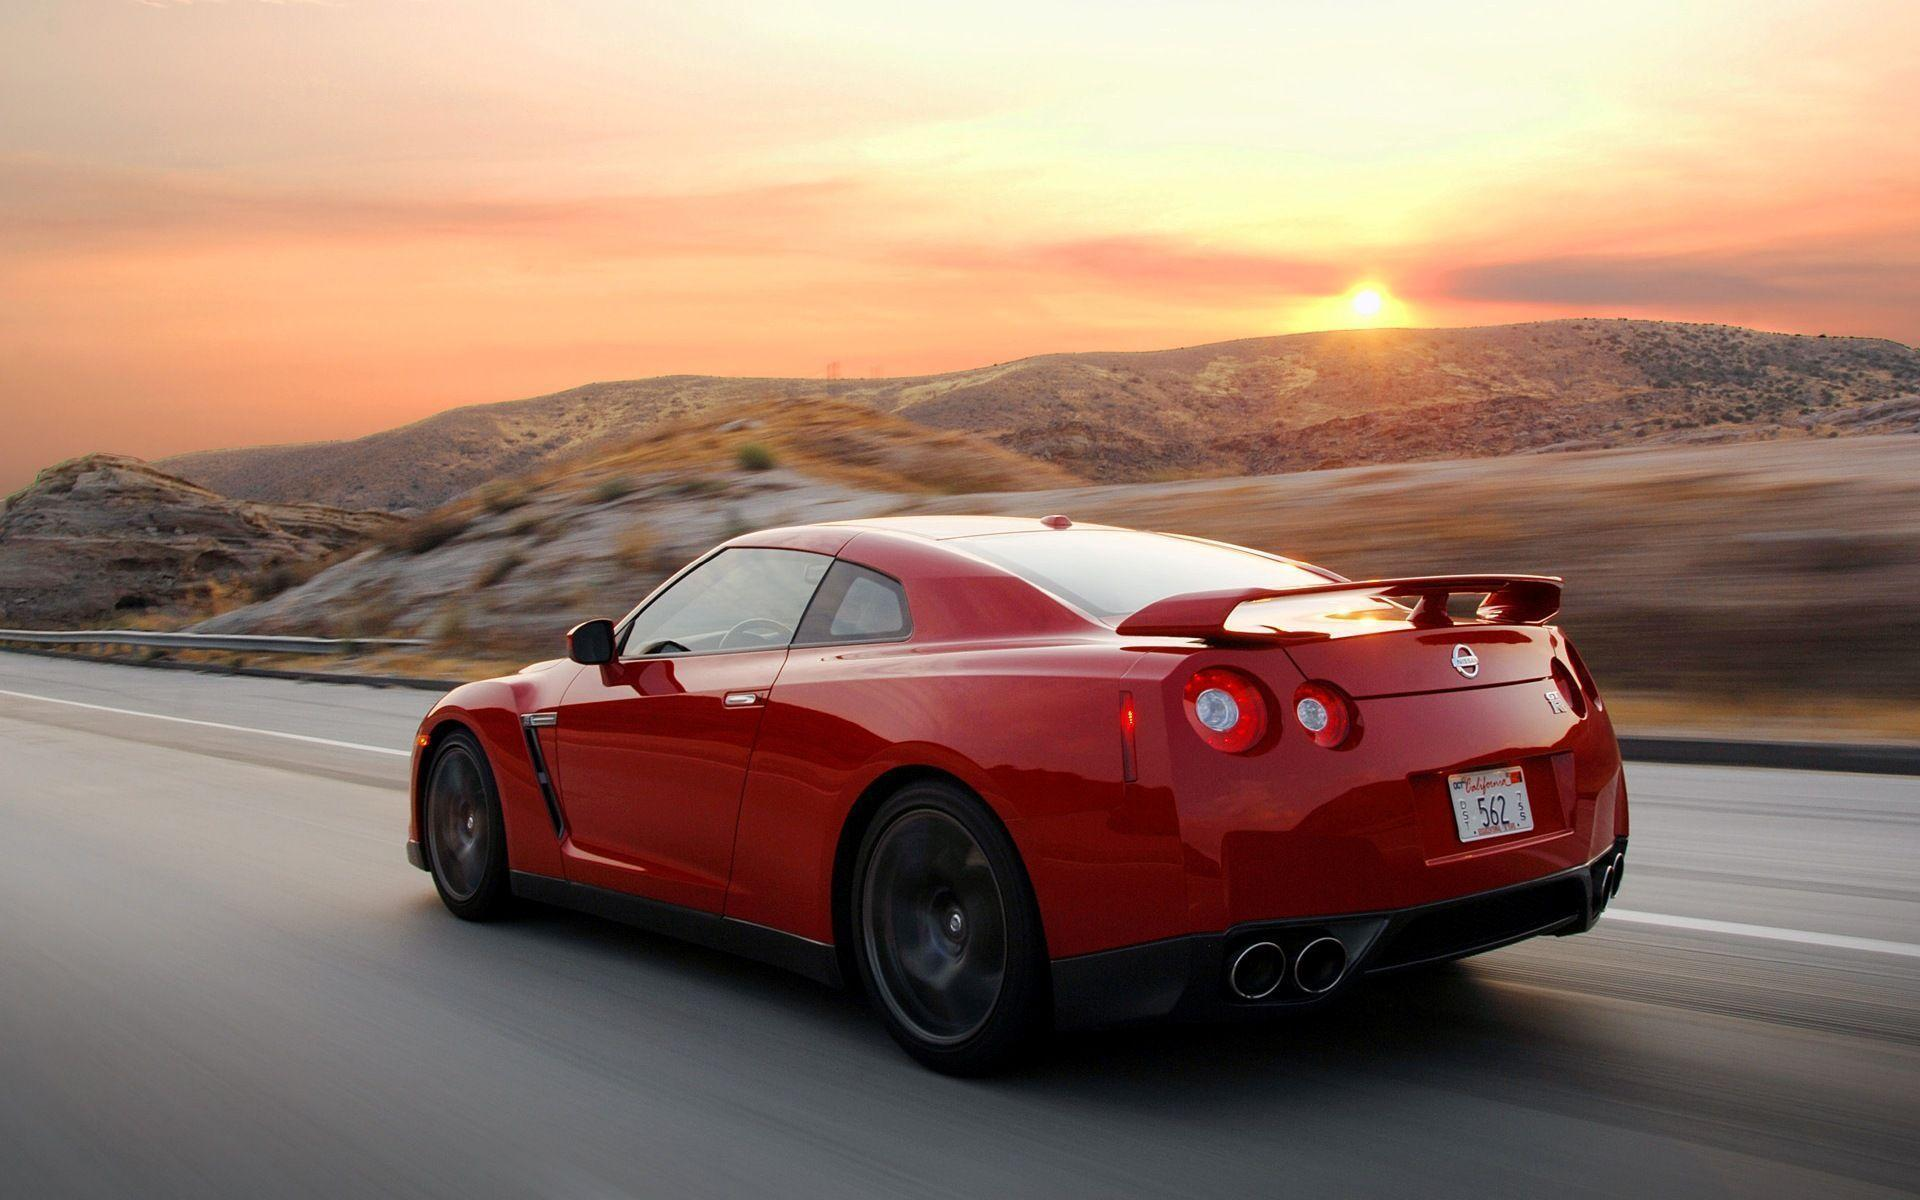 coolest gtr wallpapers - photo #12